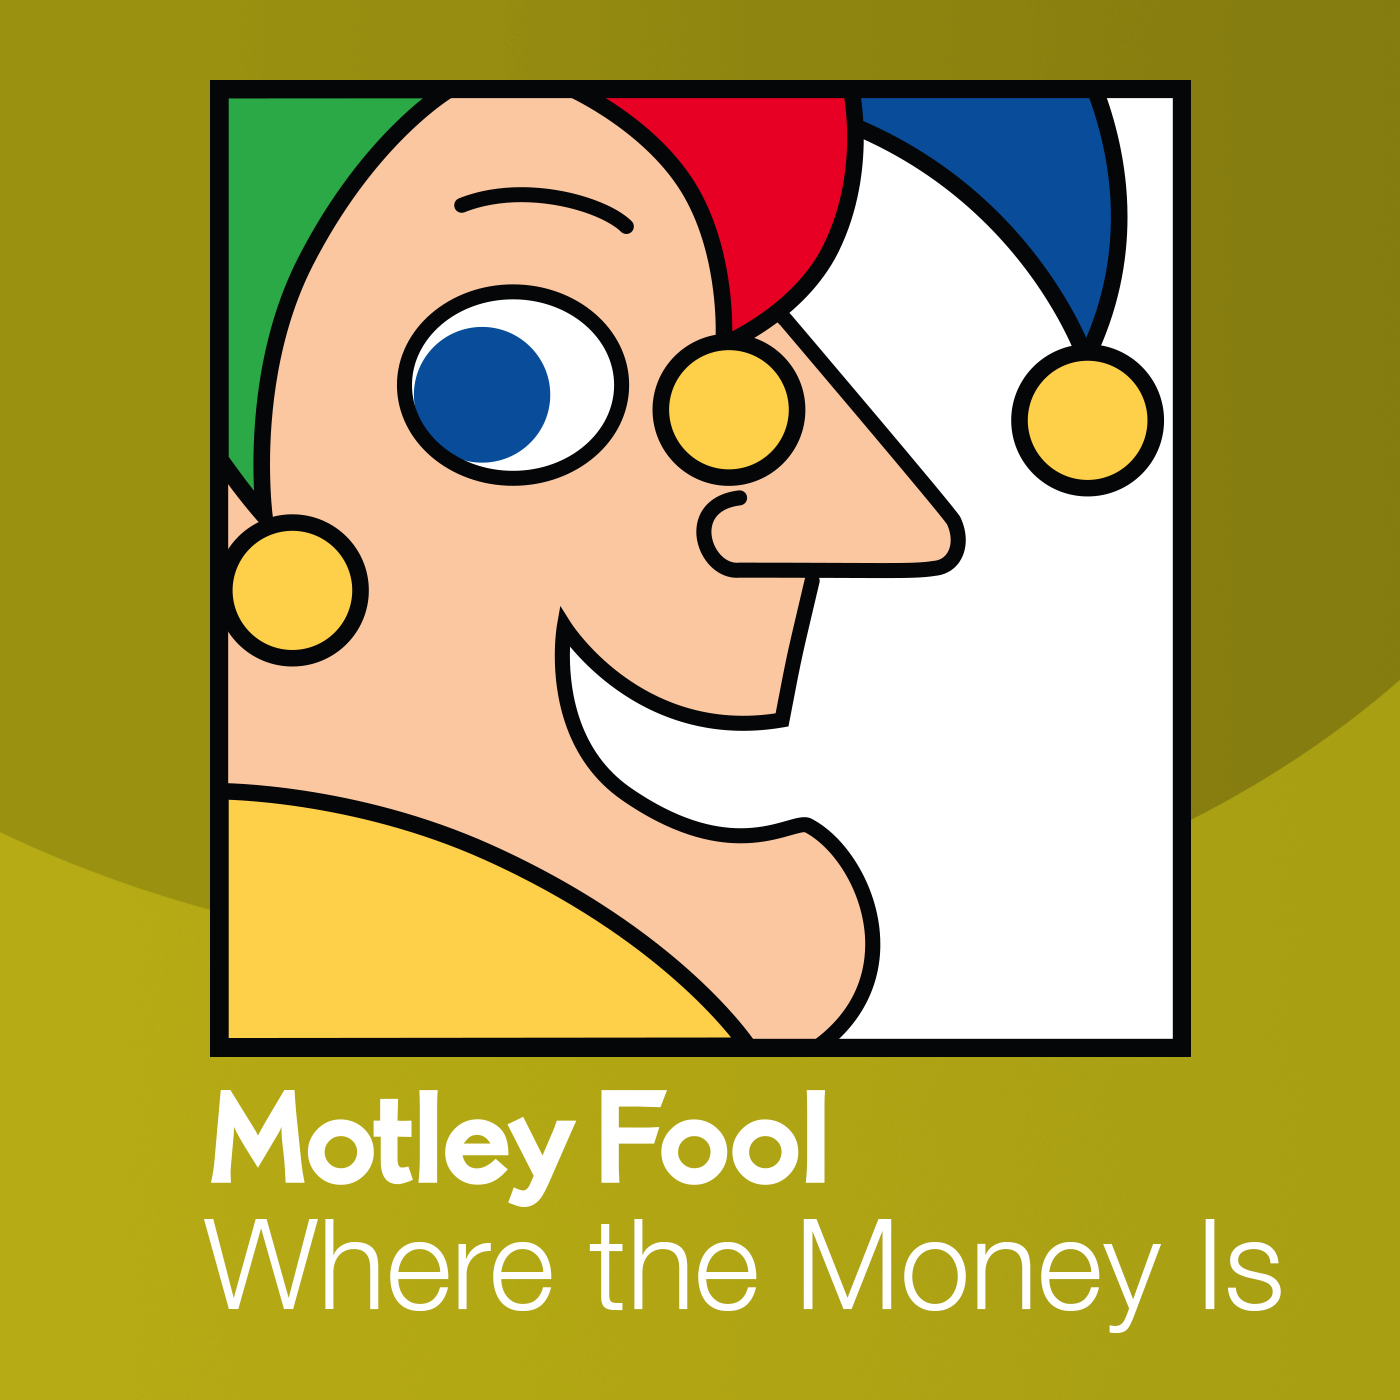 Where the Money Is 04.01.14